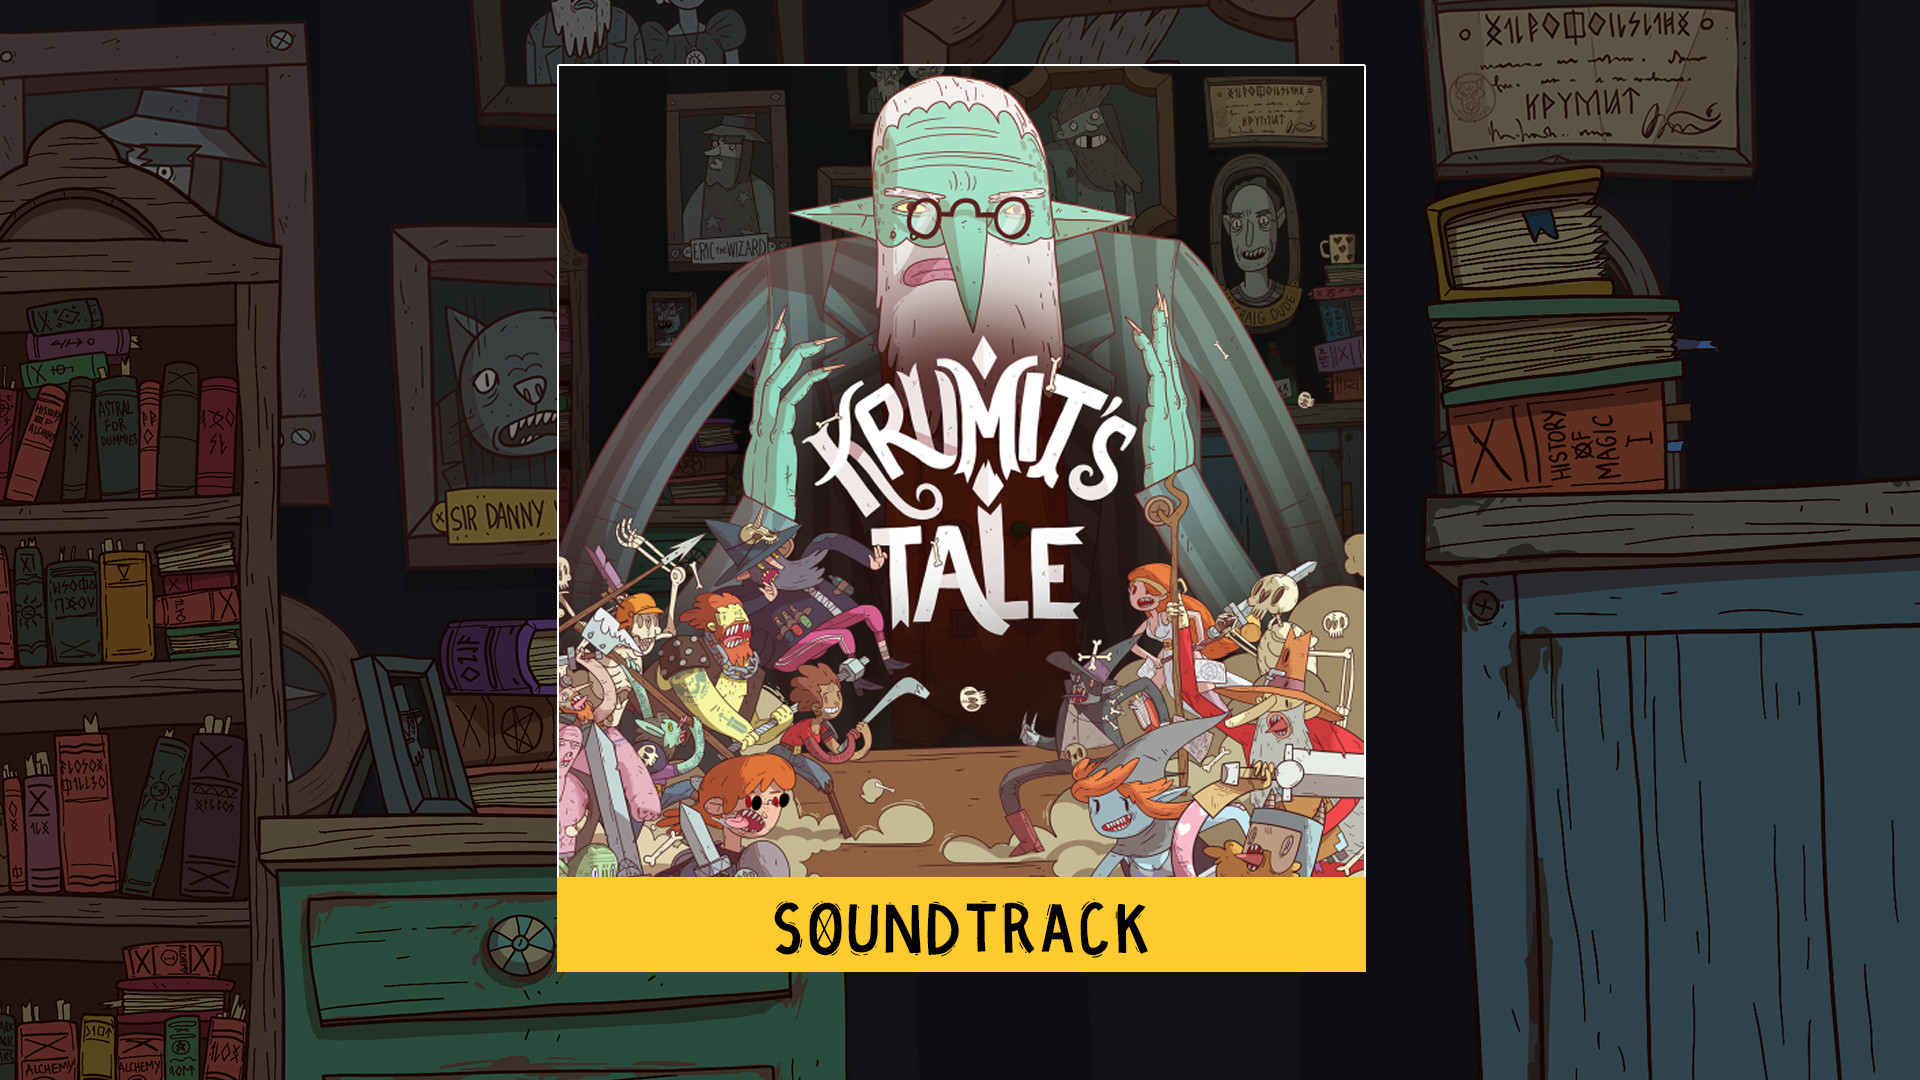 Krumit's Tale Soundtrack screenshot